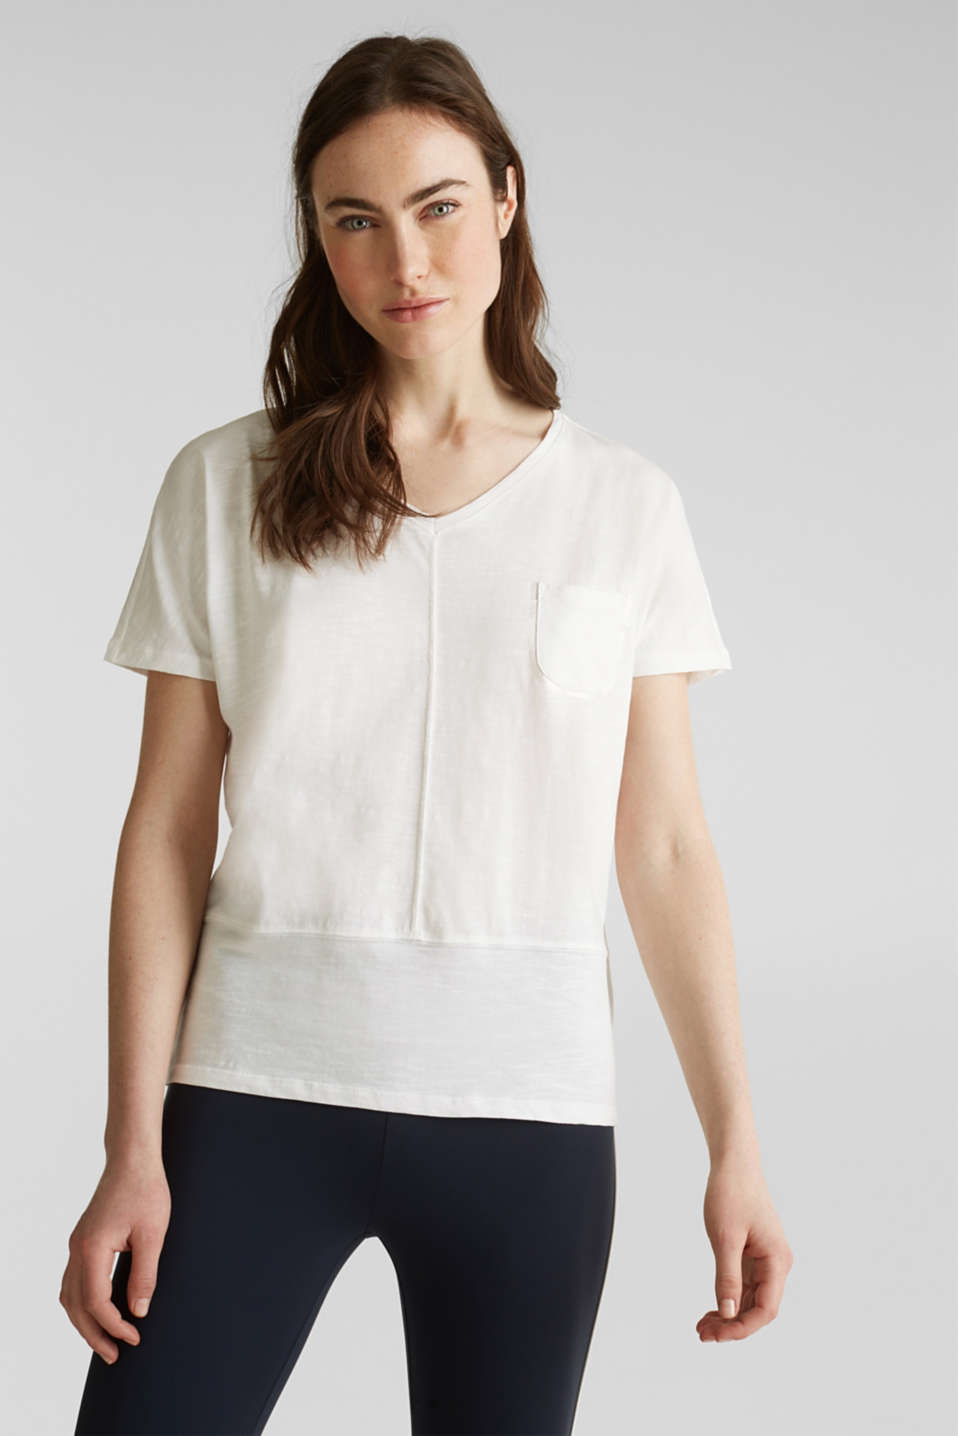 Esprit - Cropped, boxy slub T-shirt, 100% cotton